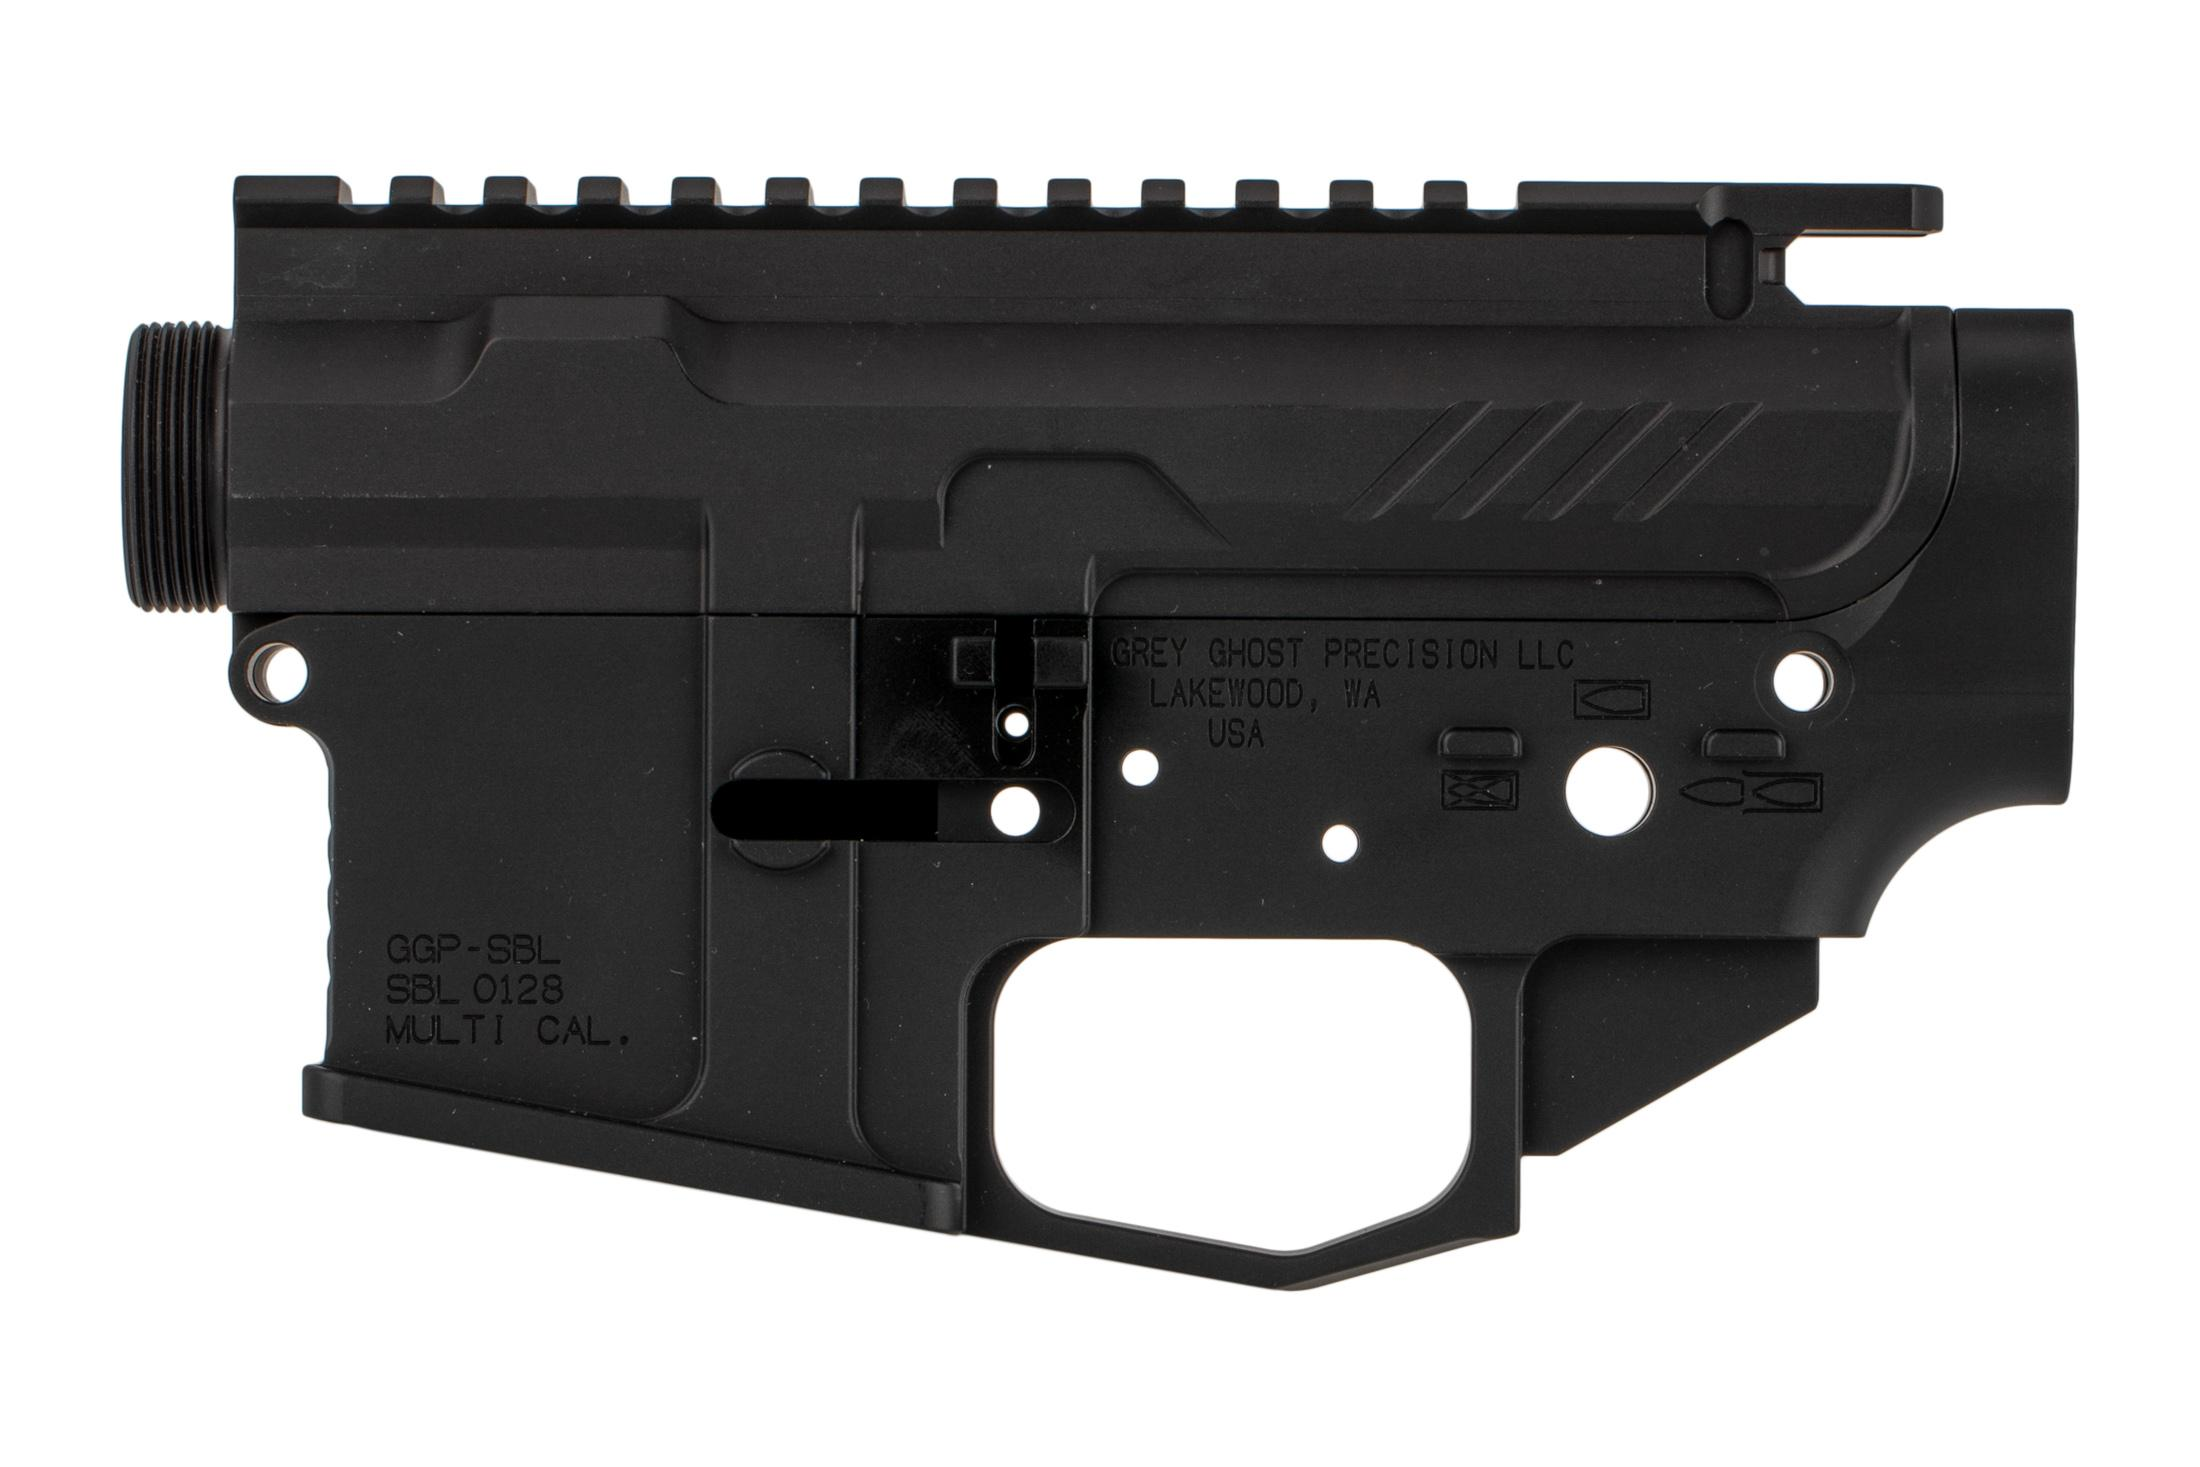 Grey Ghost Precision MKII Billet AR15 receiver set features a tough hardcoat anodized finish